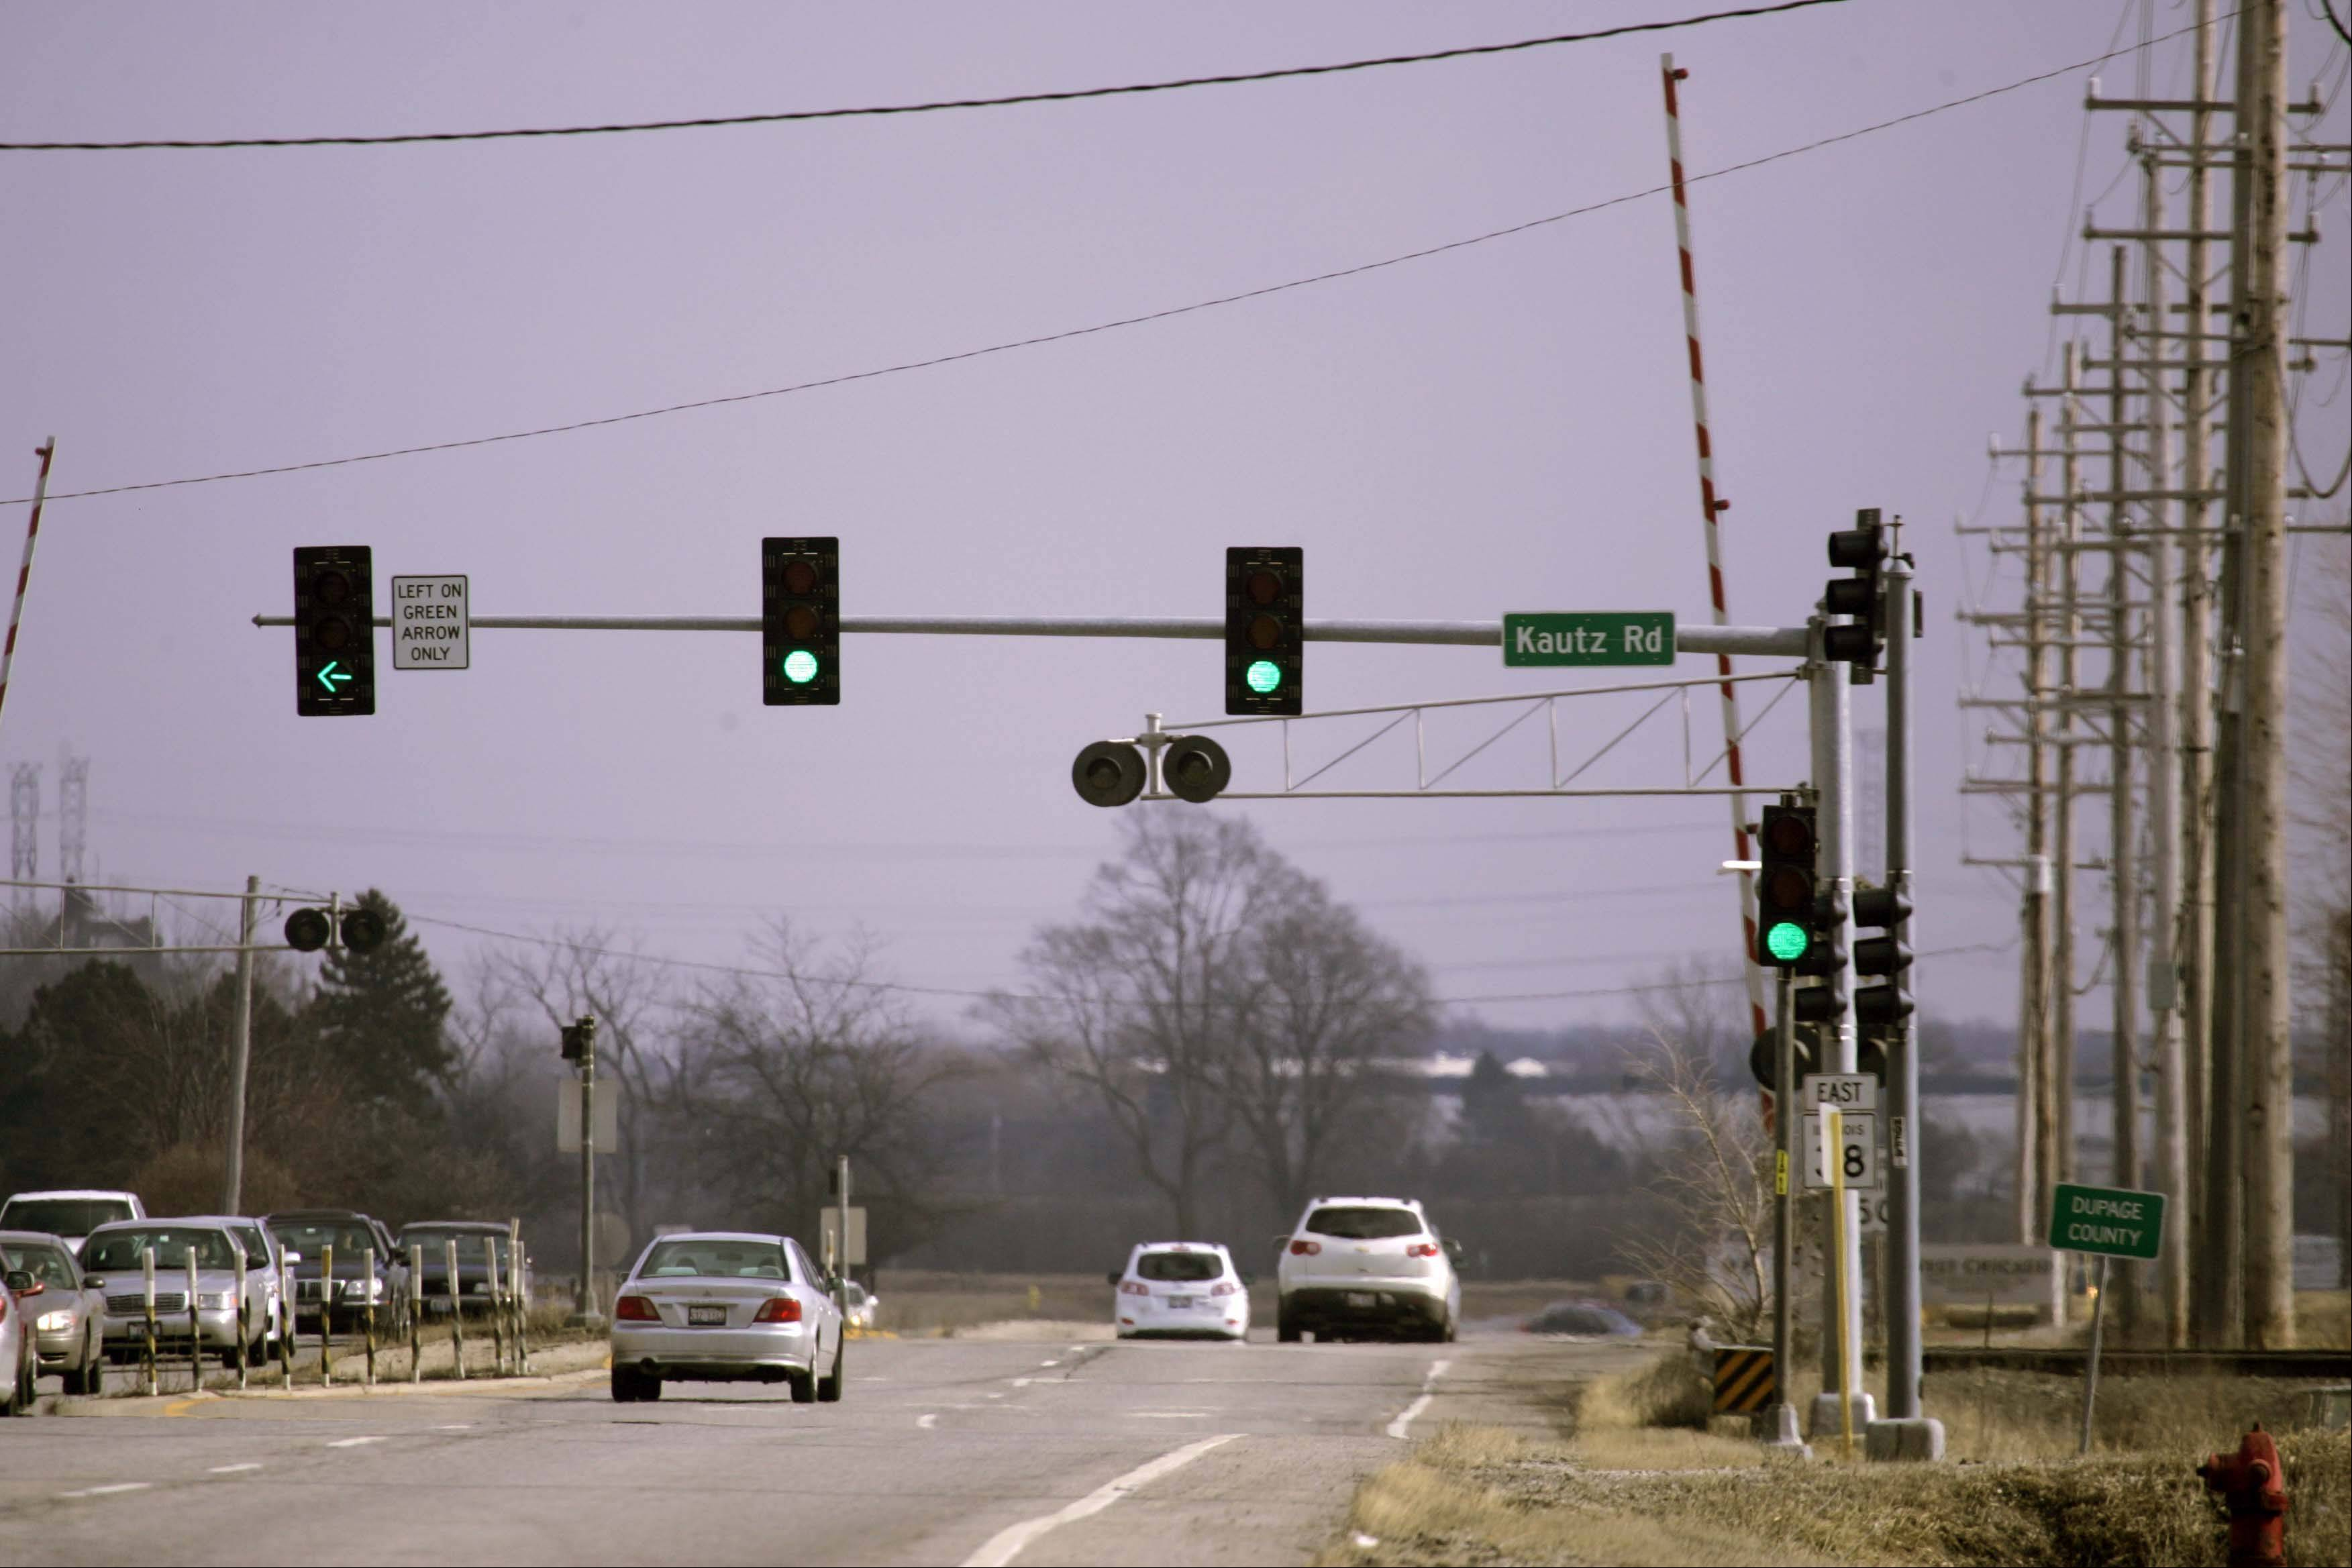 The state plans to start construction this summer on a Route 38/Kautz Road overpass at the Union Pacific railroad tracks in West Chicago.